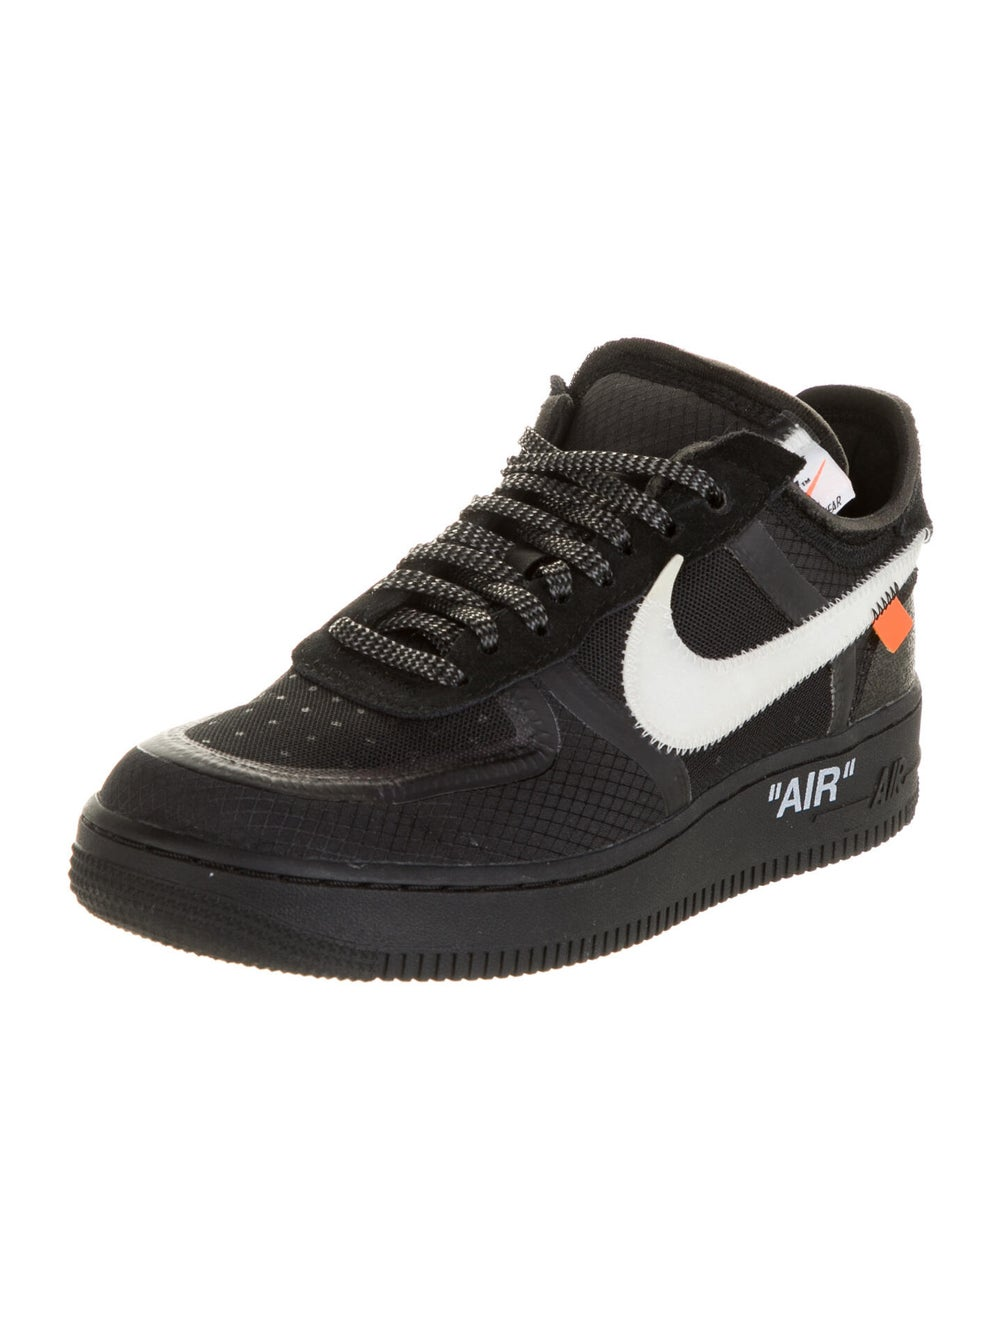 Off-White x Nike Air Force 1 Sneakers White - image 2